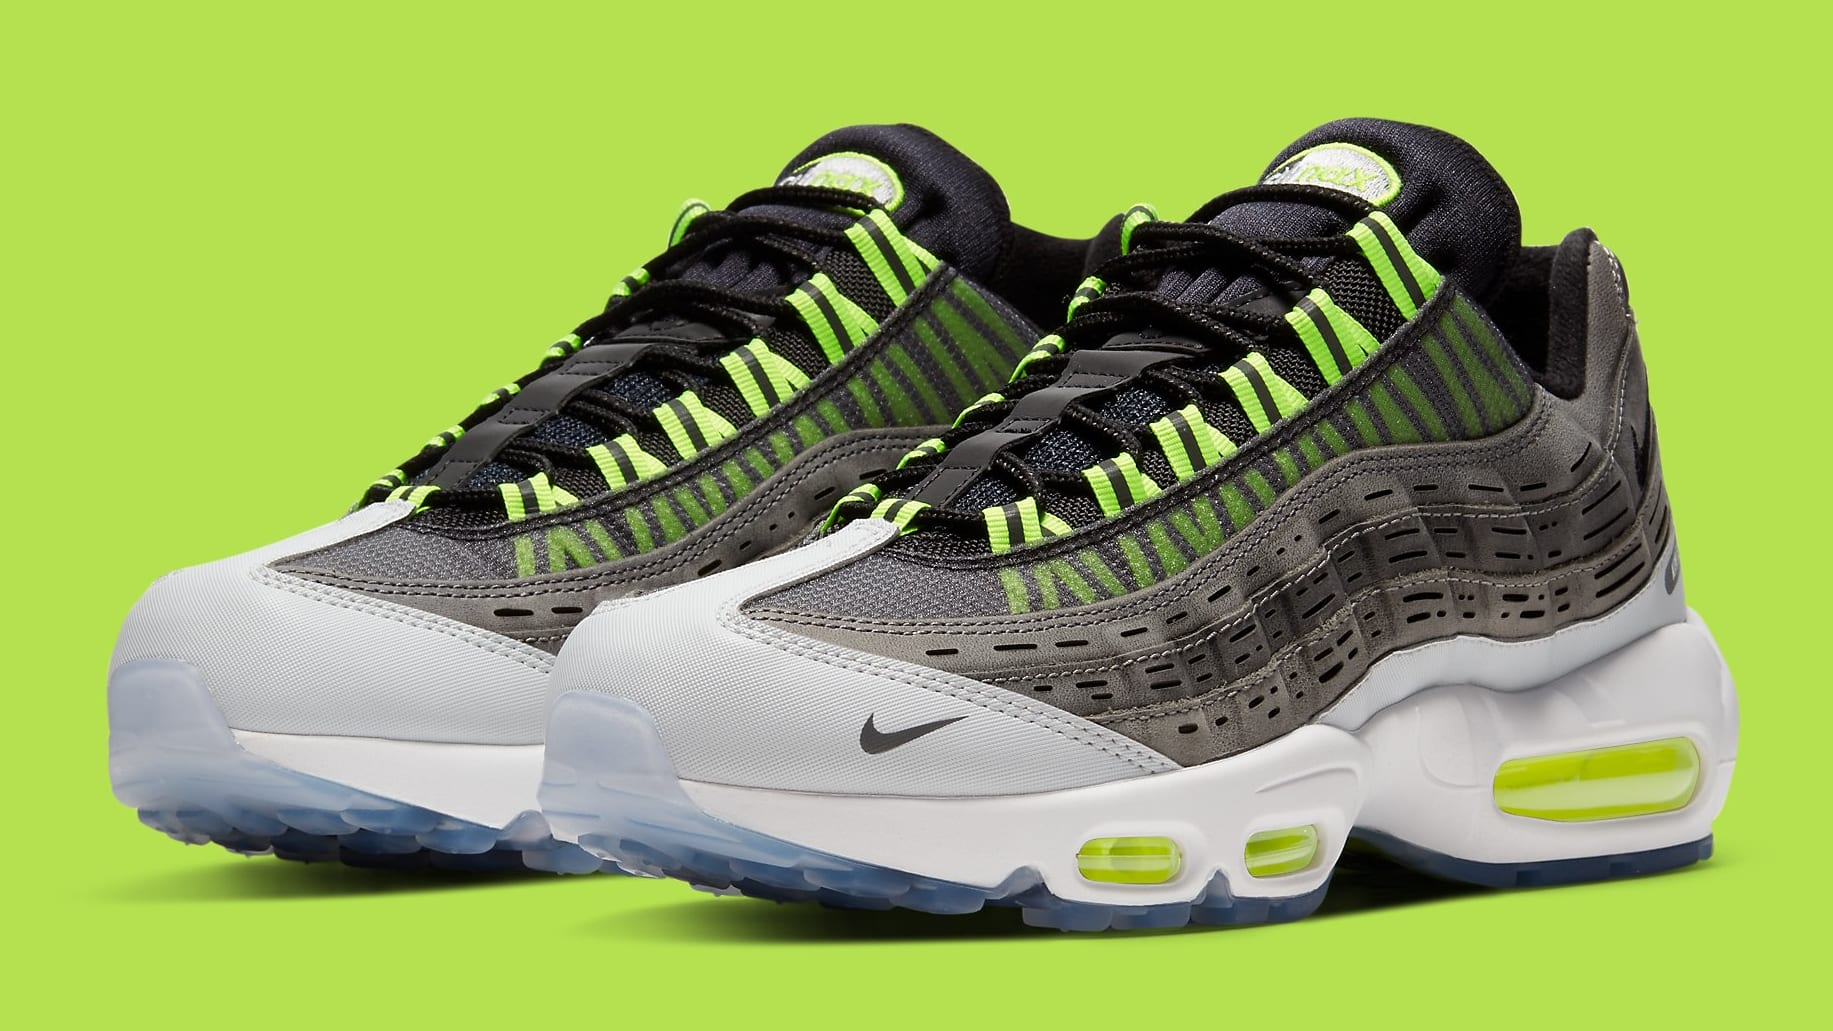 Kim Jones x Nike Air Max 95 Volt Release Date DD1871-002 Pair